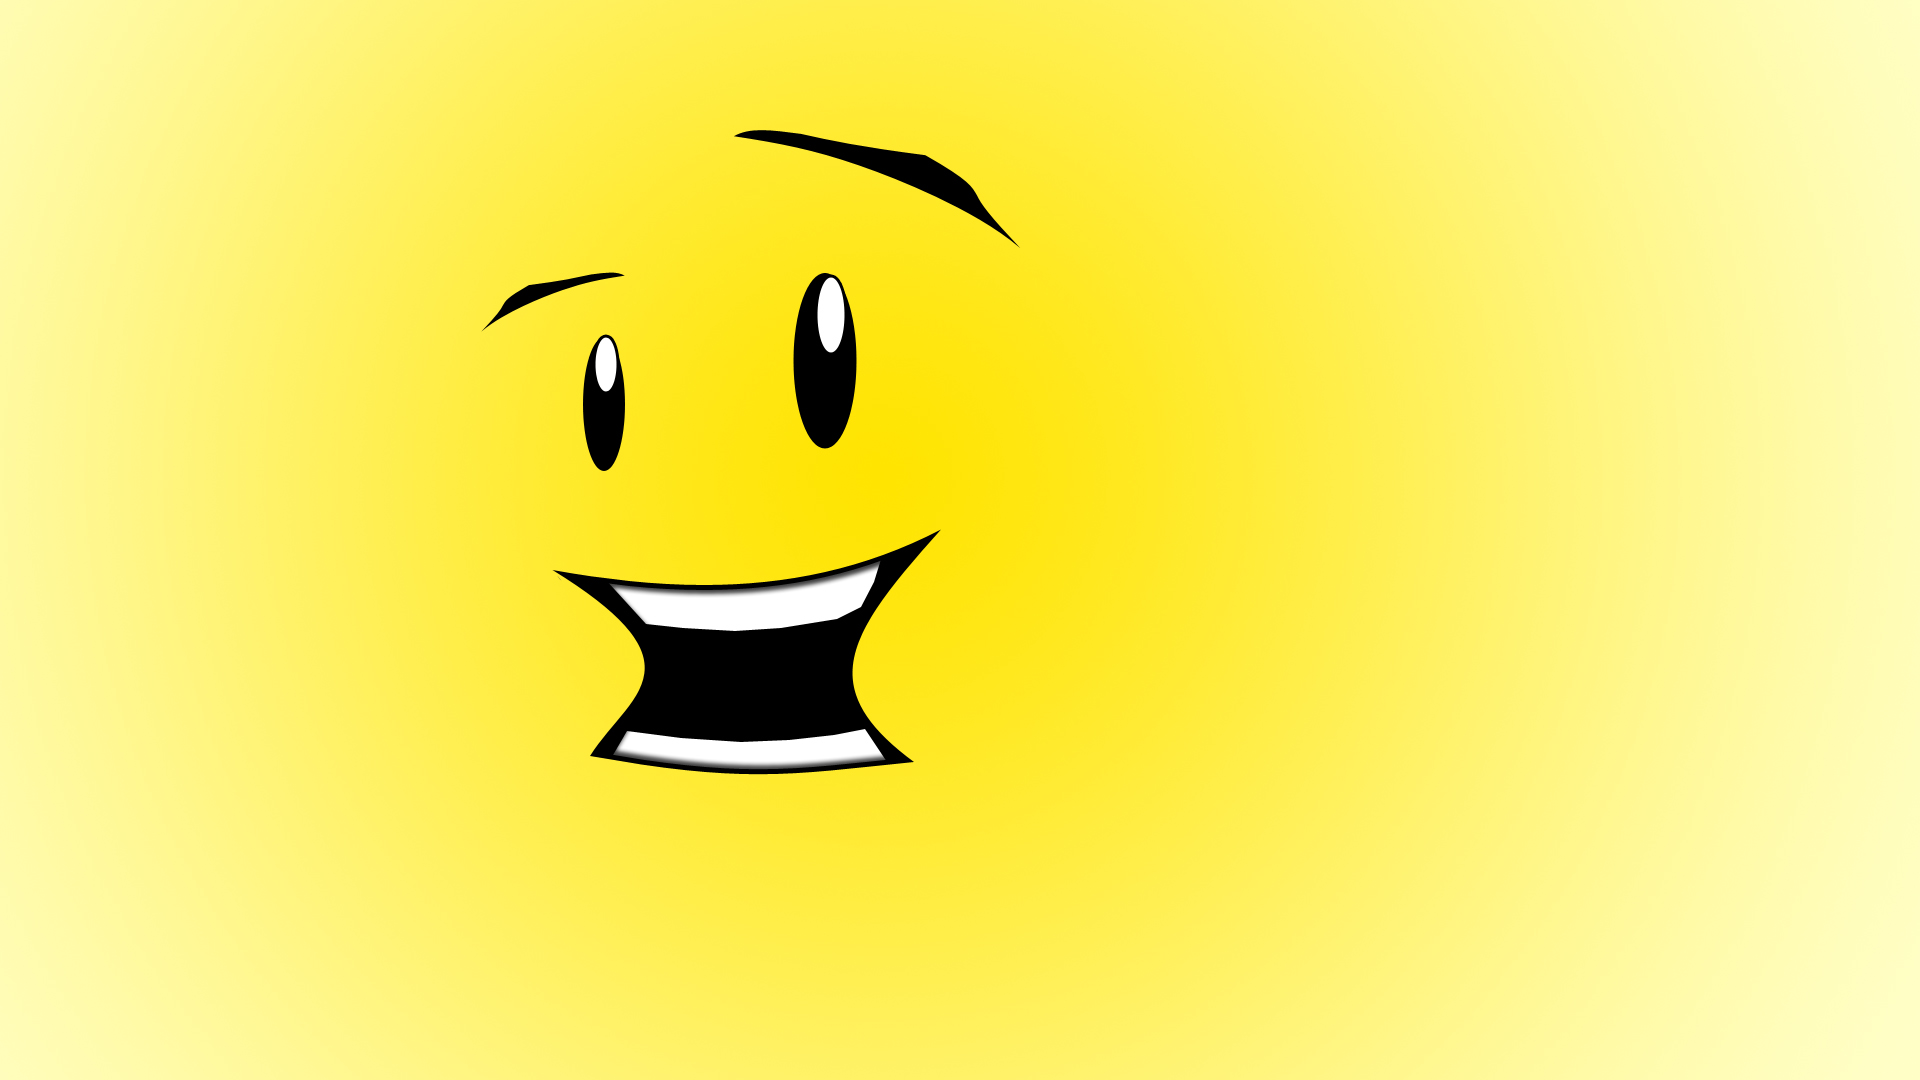 Happy Faces Hd Wallpapers Background - Wallpaperfull.